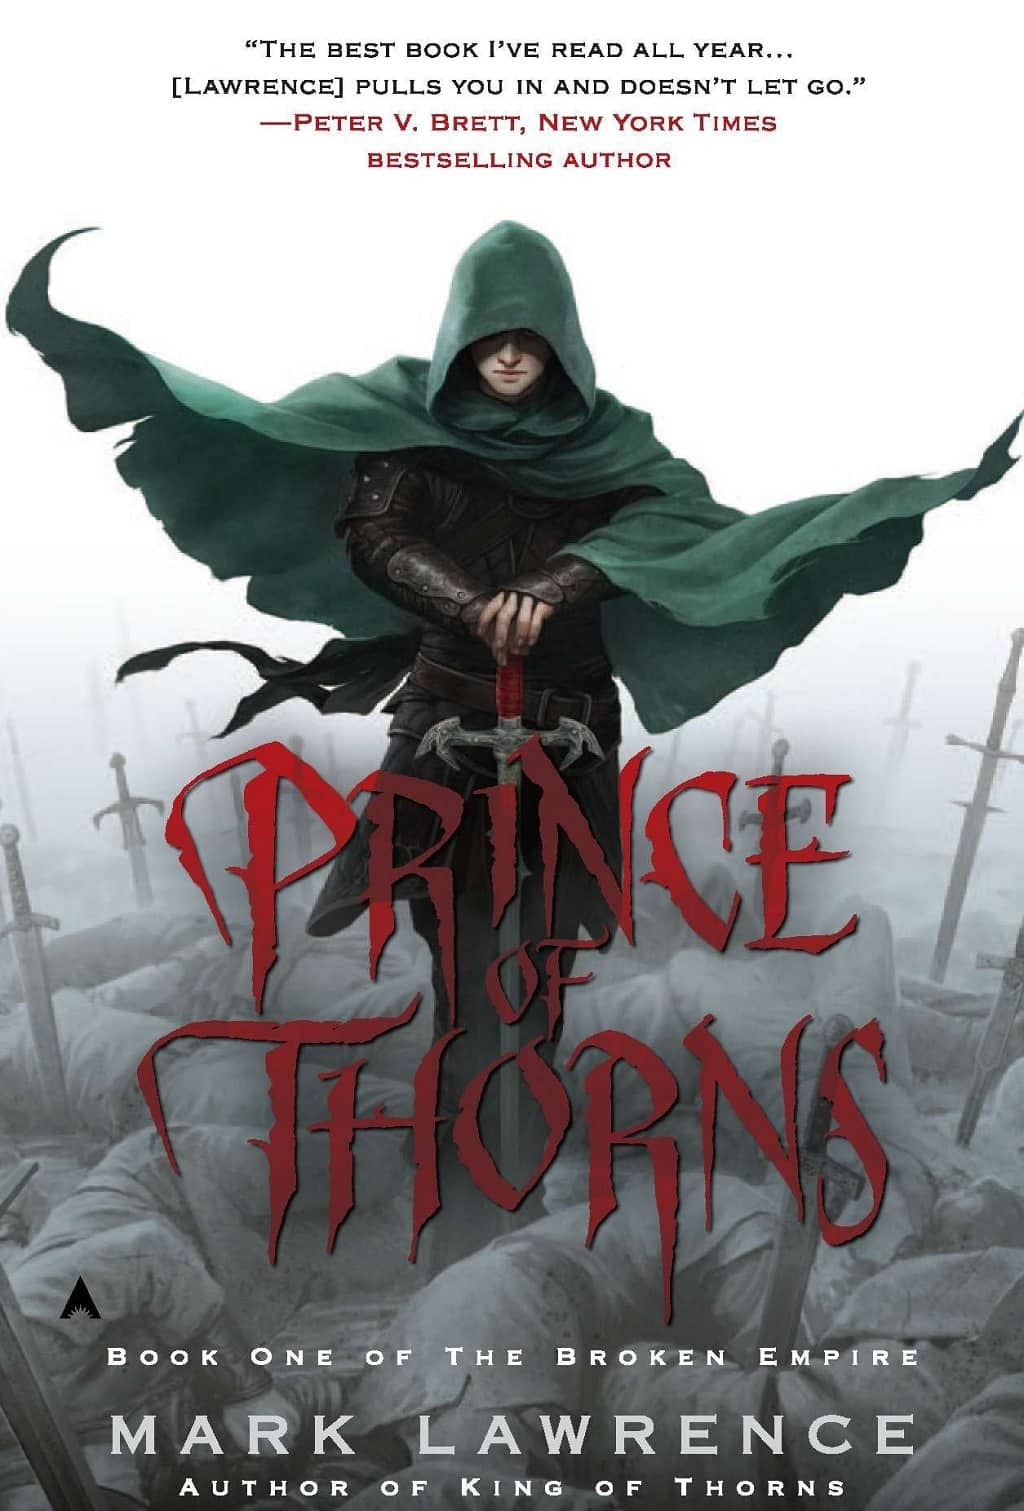 Prince of Thorns Audiobook Free Download and Listen